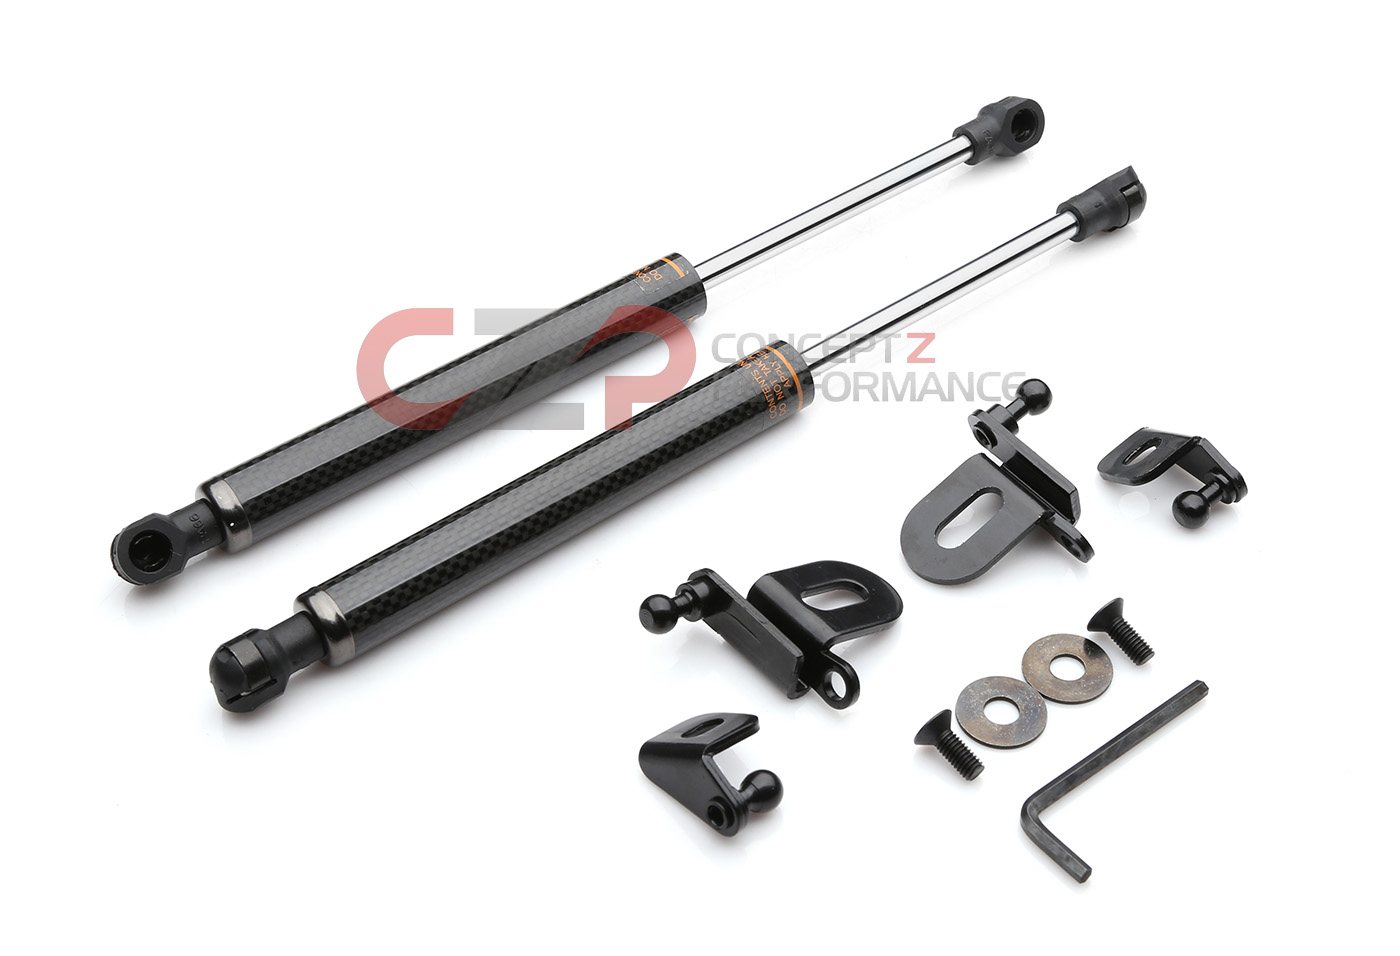 Circuit Sports Ehd Ig35c Tp Hood Damper Strut Kit Carbon